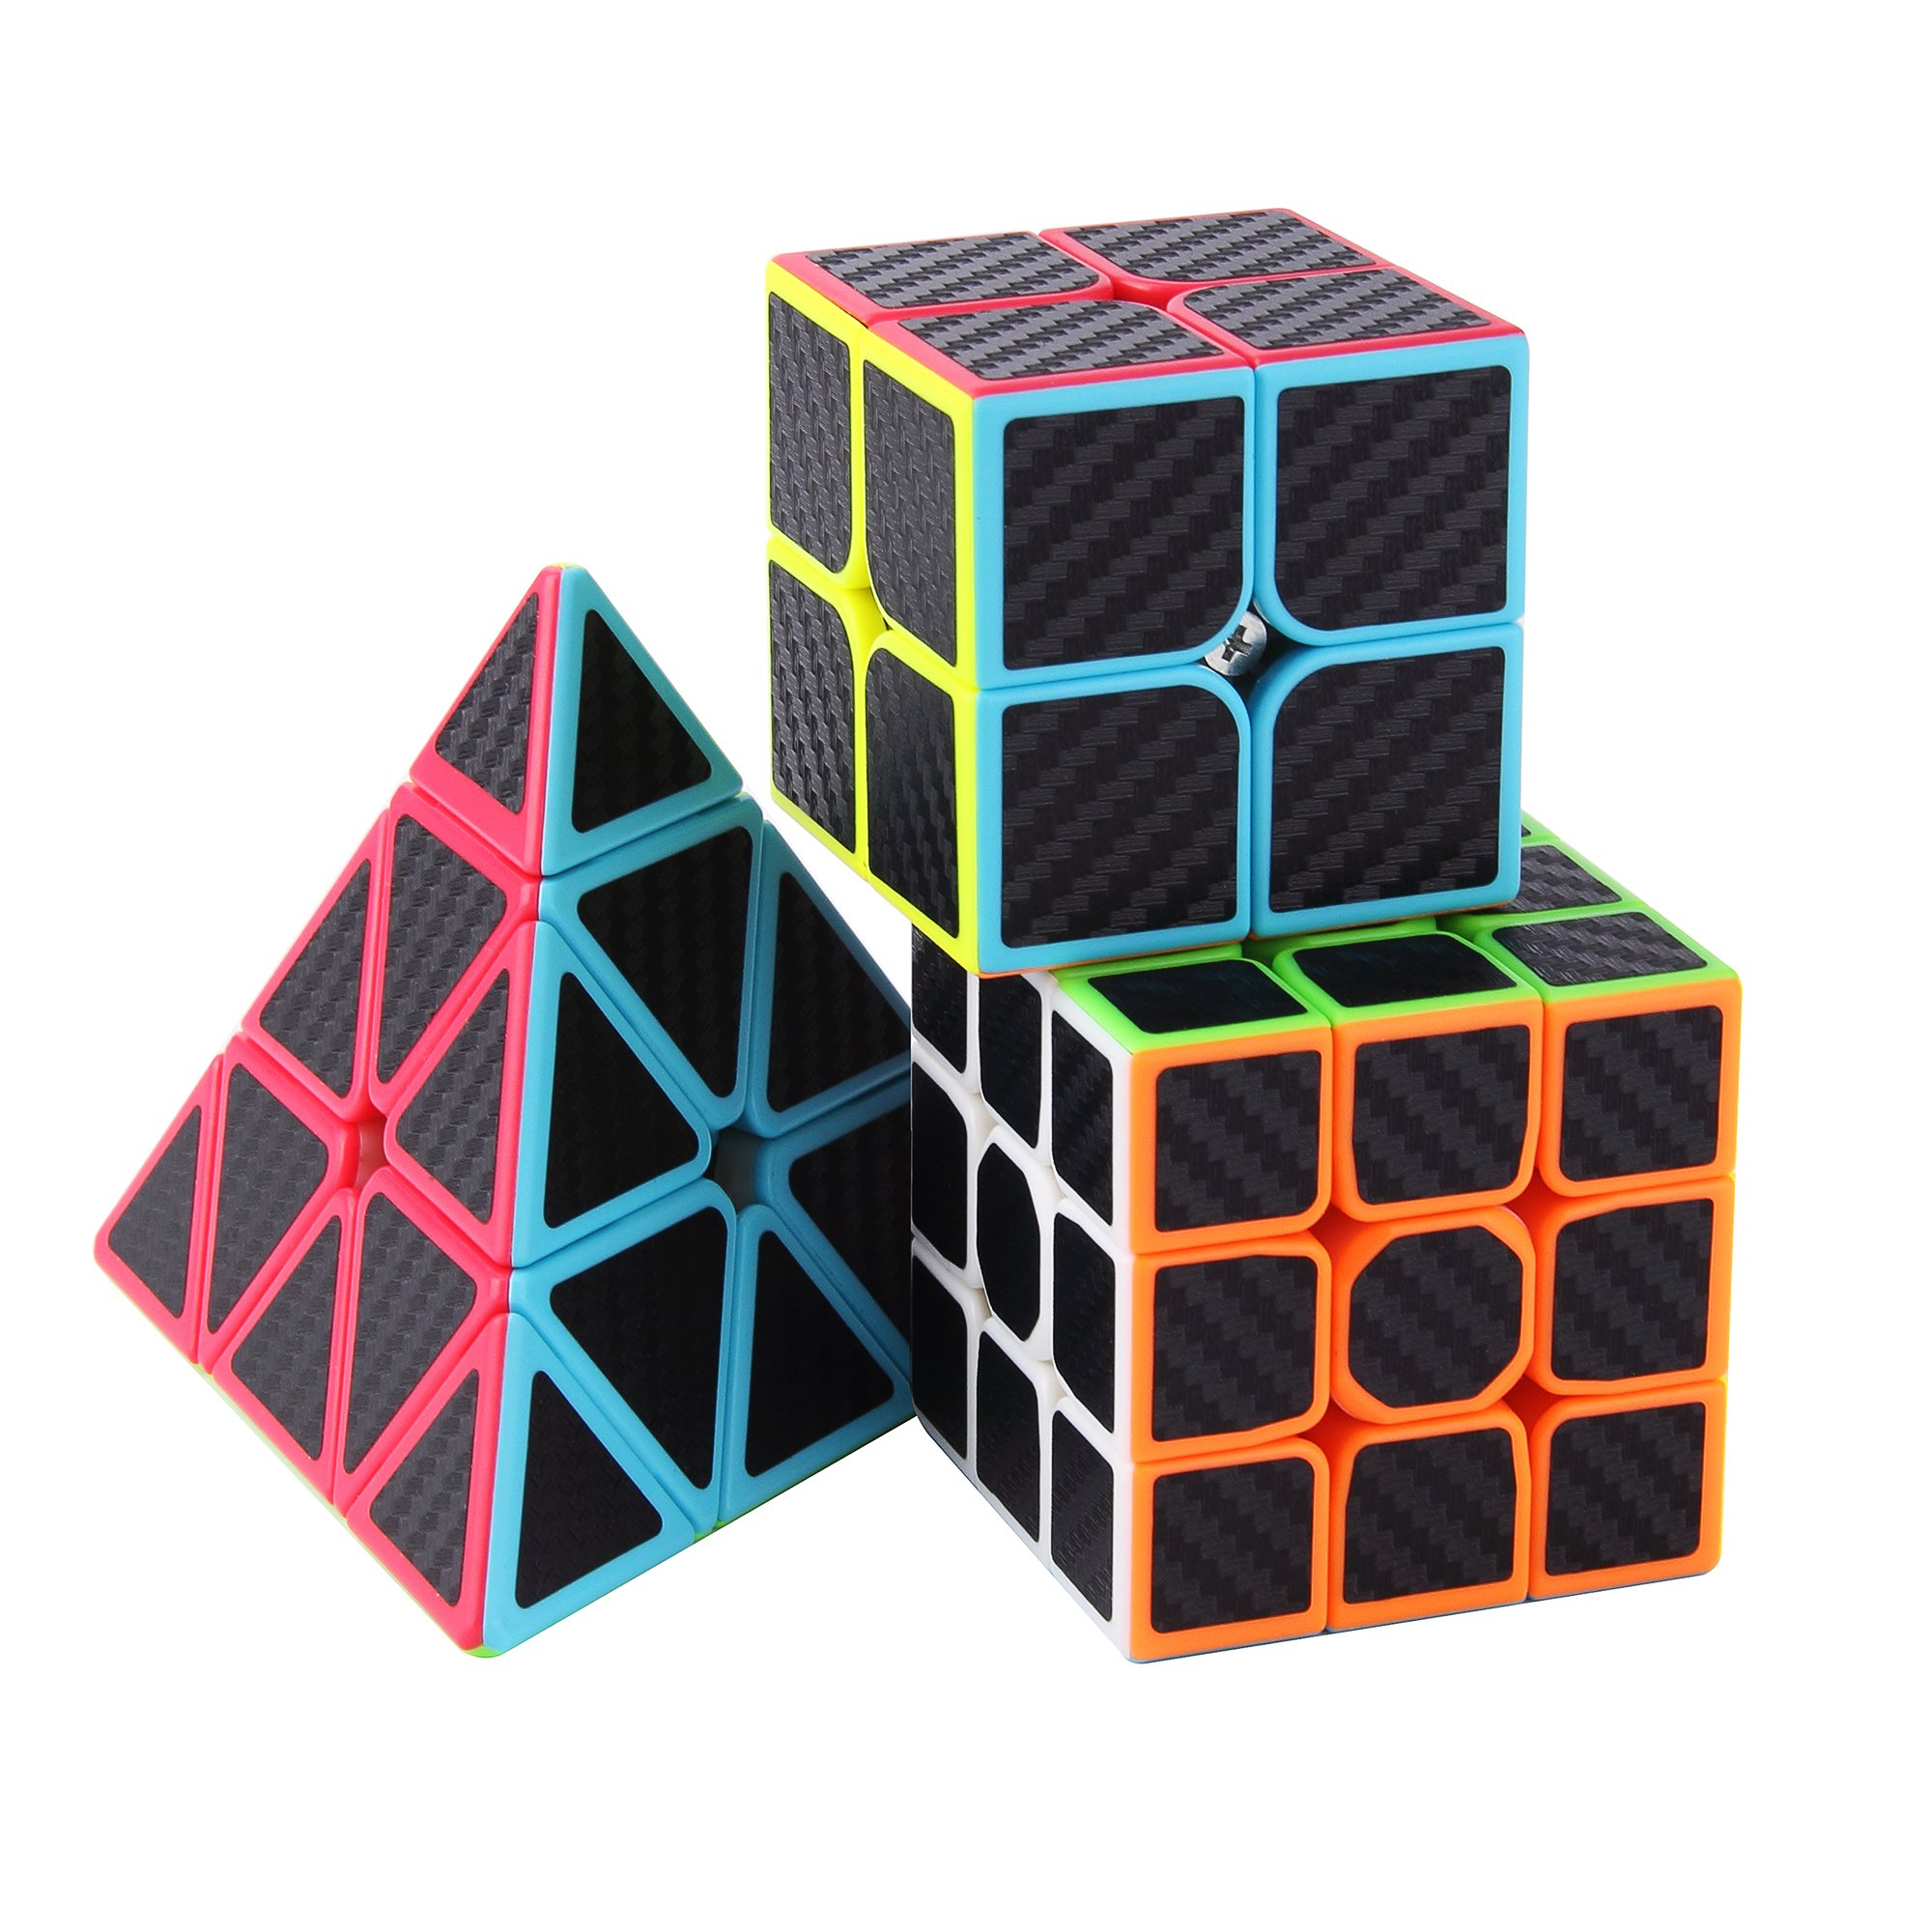 Roxenda Speed Cube Set, Magic Cube Set of 2x2x2 3x3x3 Pyramid Cube Carbon Fiber Improved Version Speedcube by ROXENDA